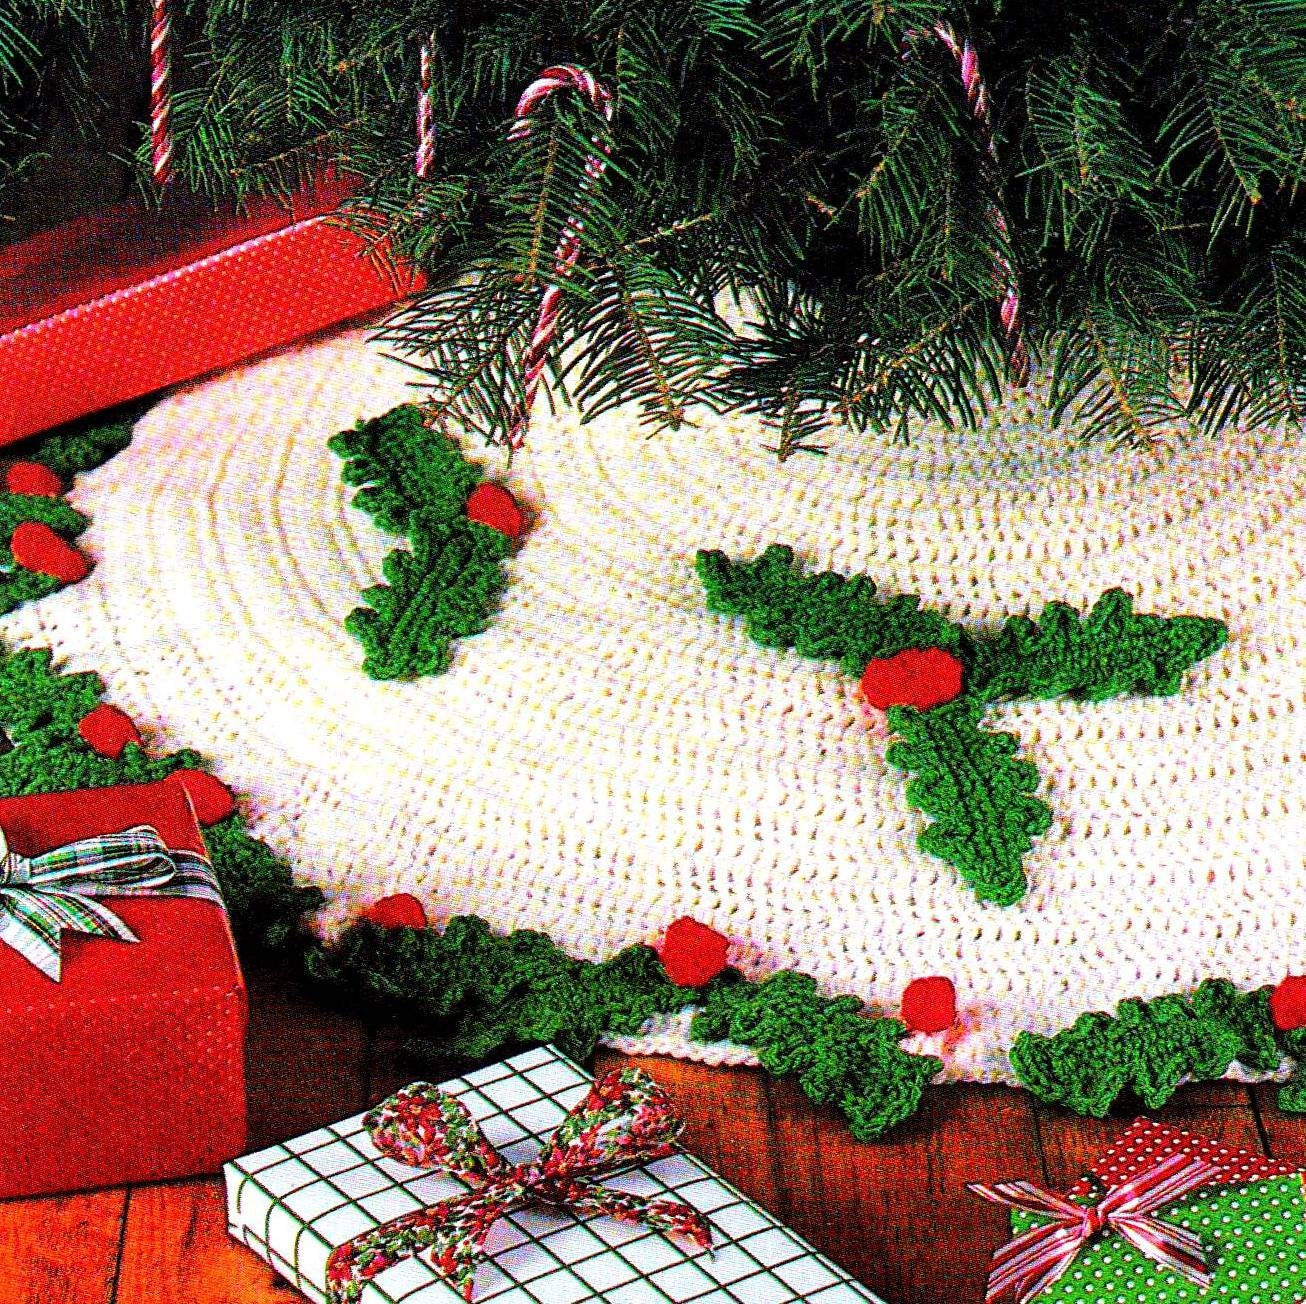 Easy Knitting Pattern For Christmas Tree Skirt : Instant download pdf vintage crochet pattern christmas tree